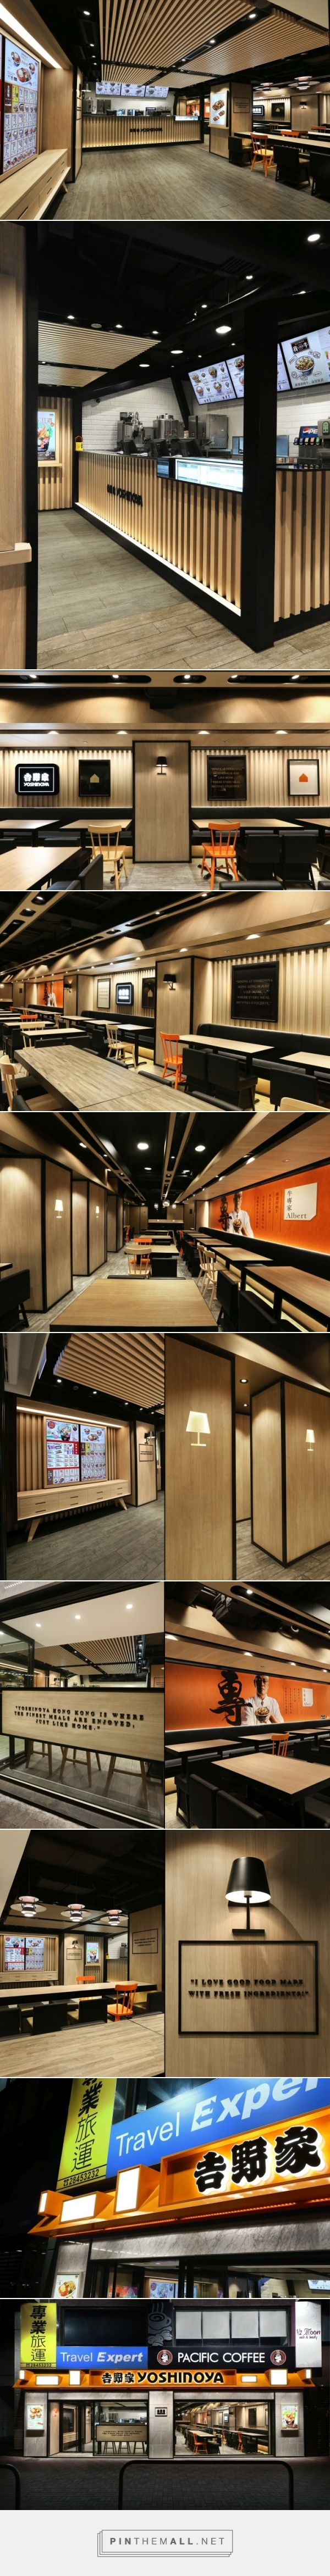 Yoshinoya Fast Food Restaurant by AS Design Service, Hong Kong »  Retail Design Blog - created via https://pinthemall.net